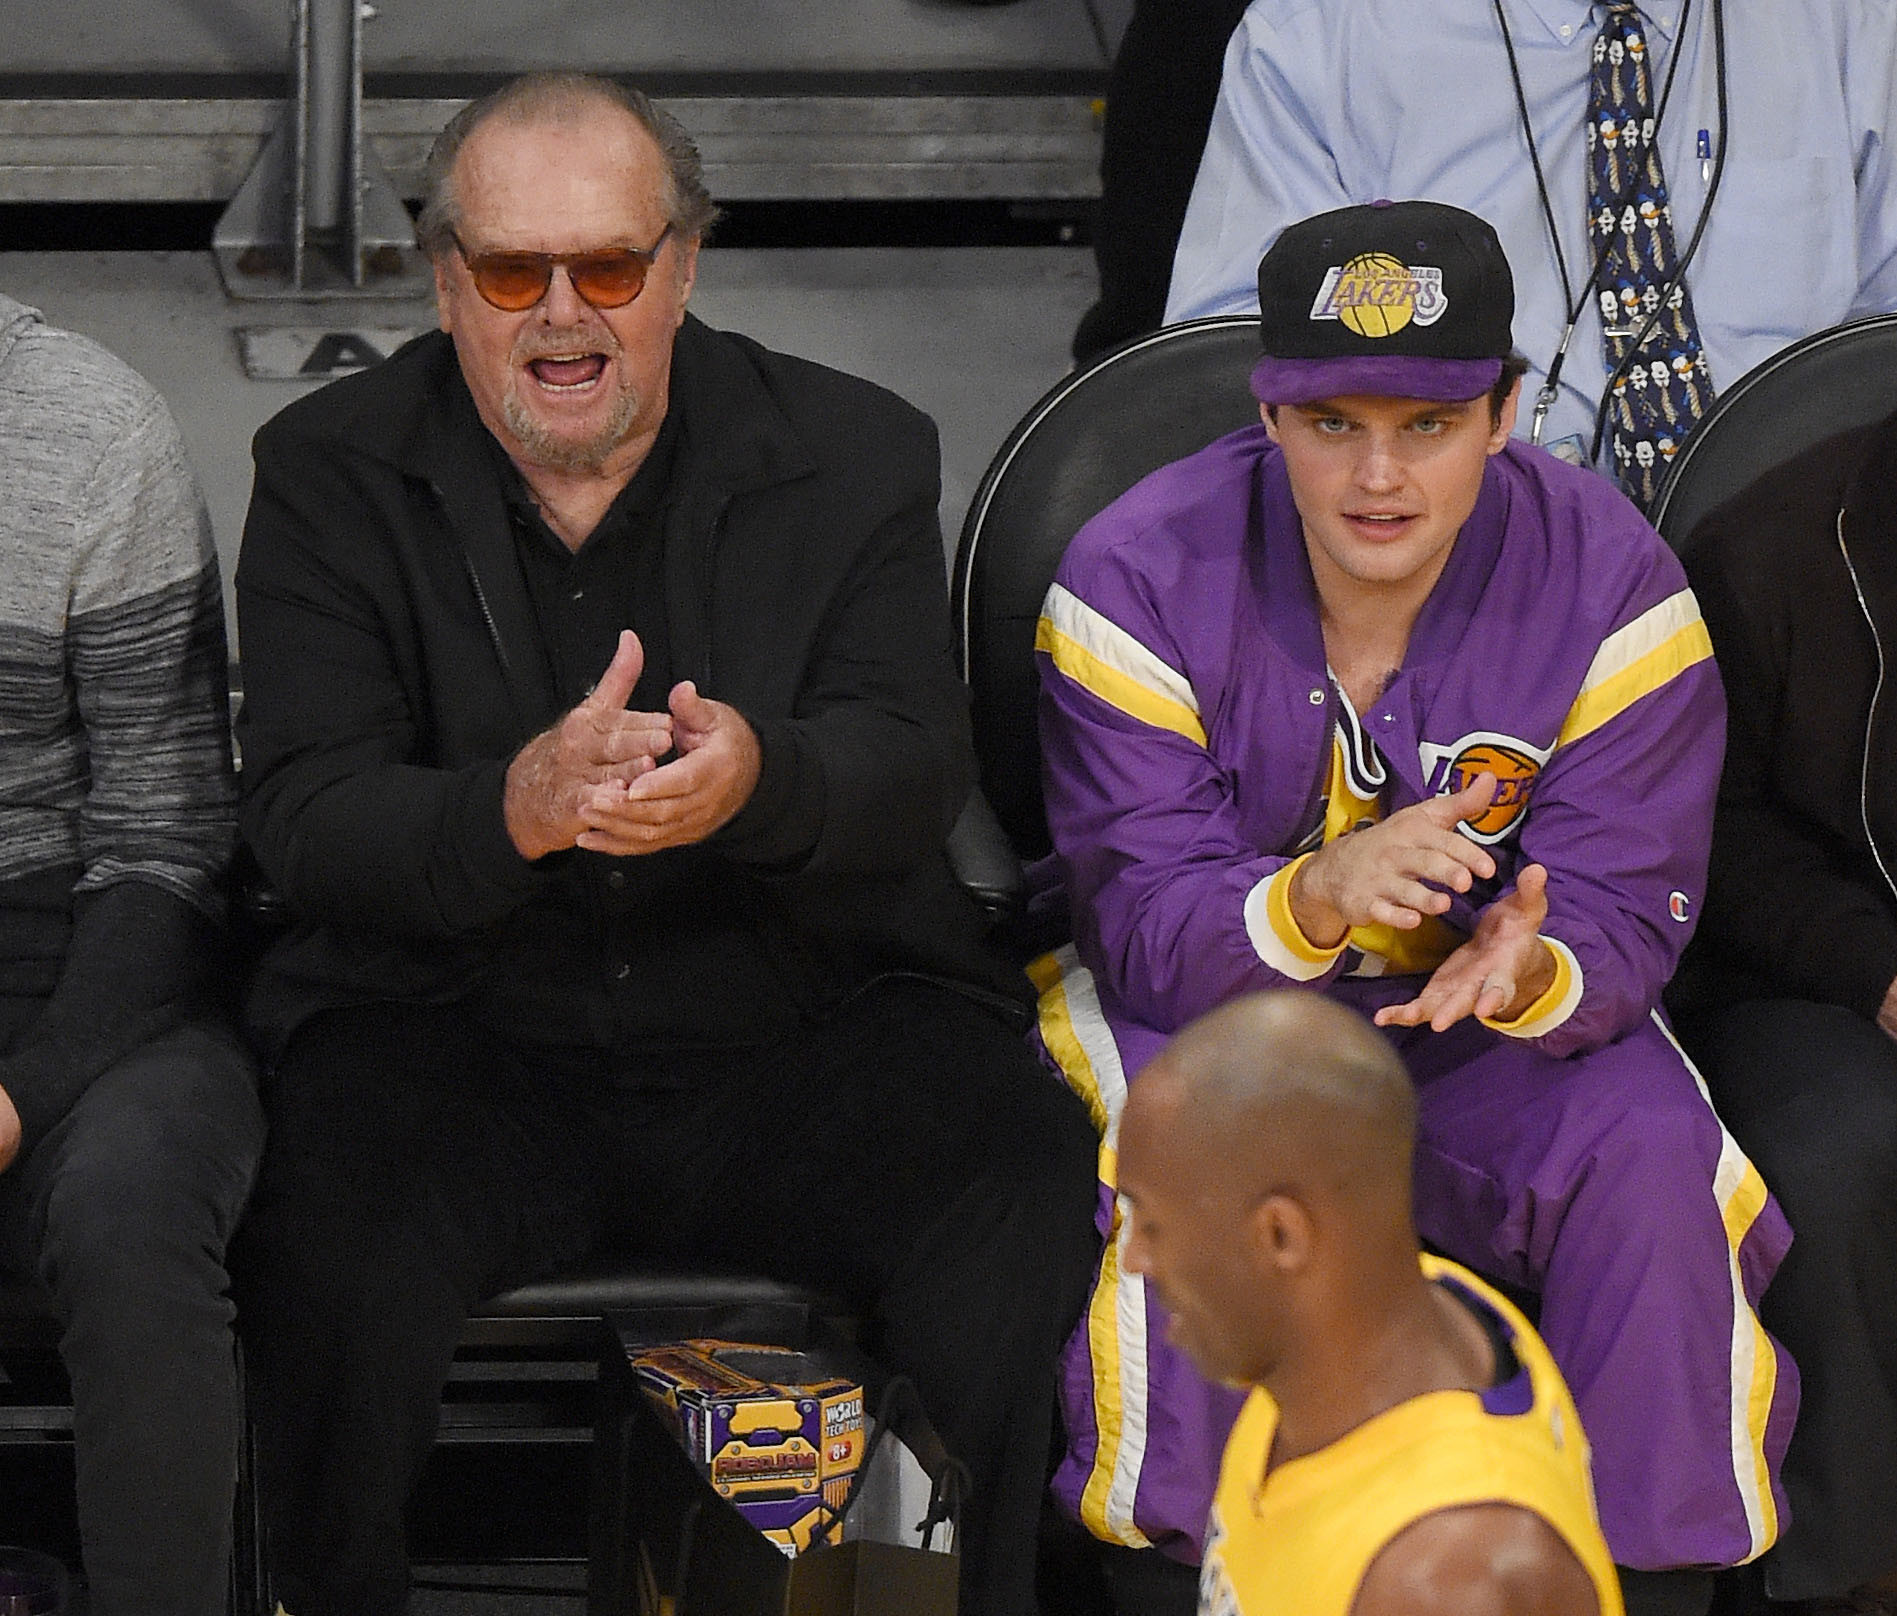 Celebrity sightings at lakers game last night